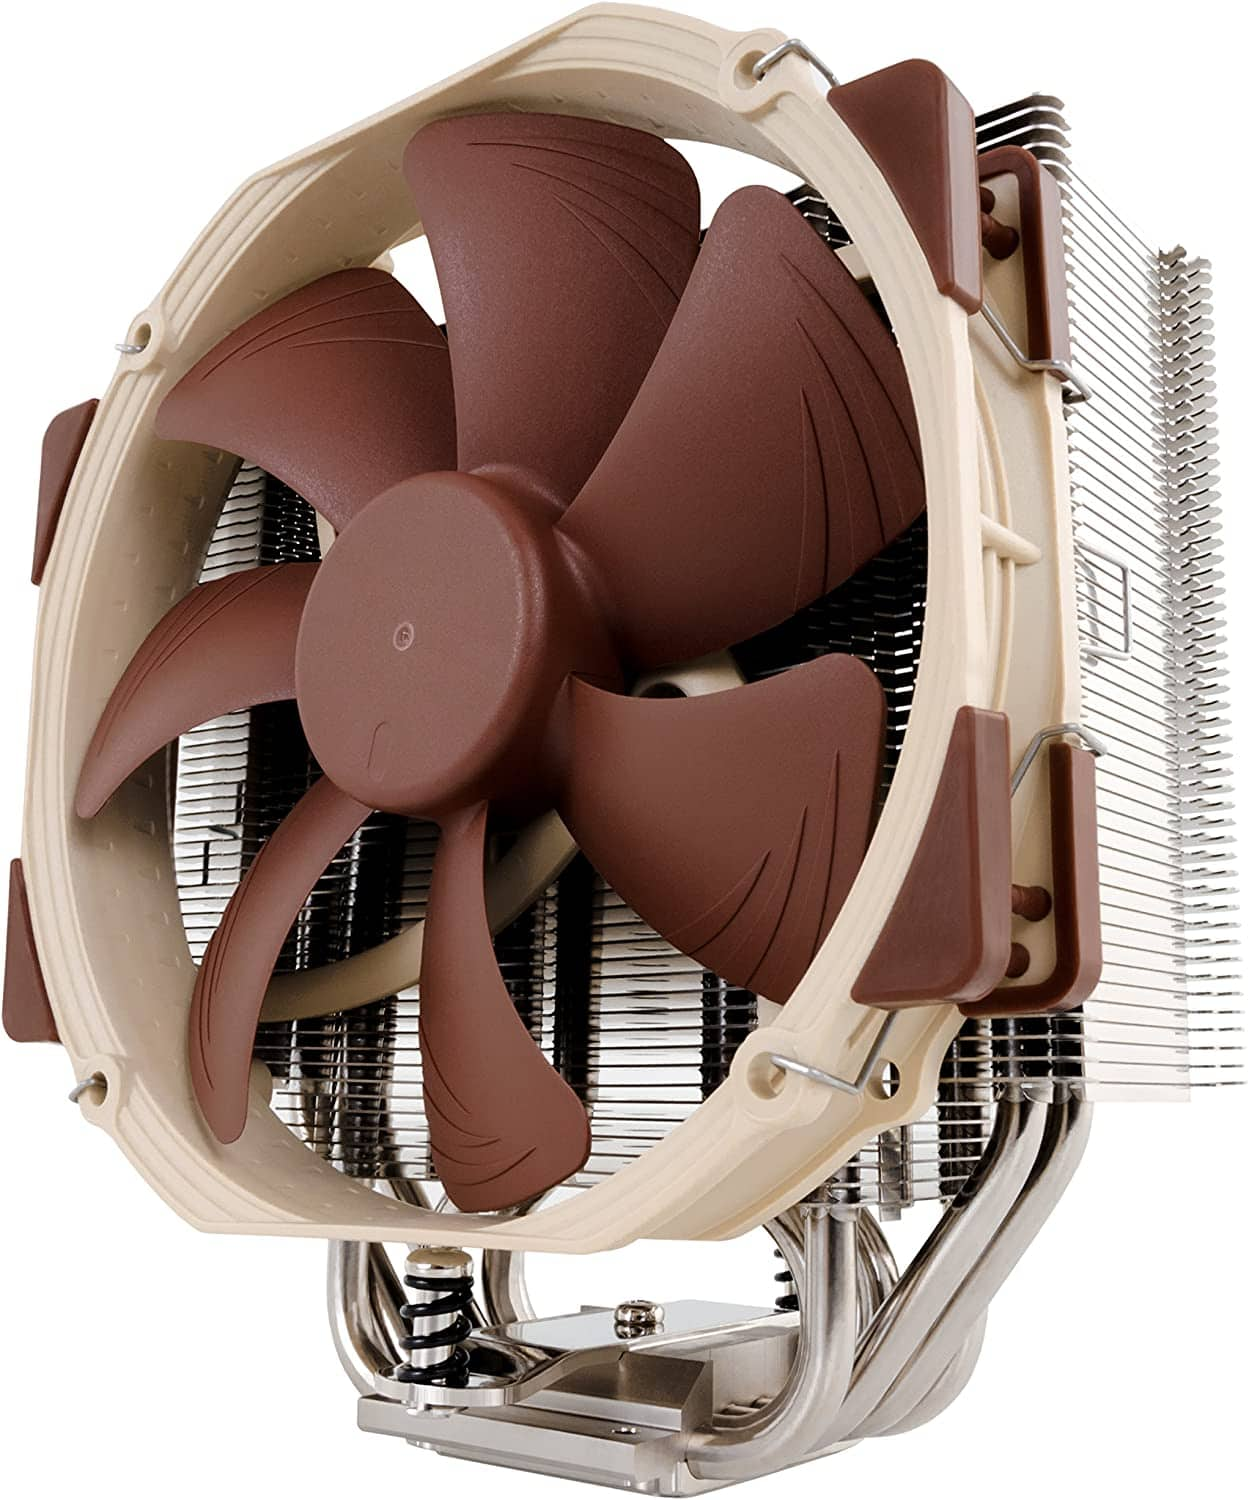 Noctua NH-U14S, Premium CPU Cooler with NF-A15 140mm Fan $63.75